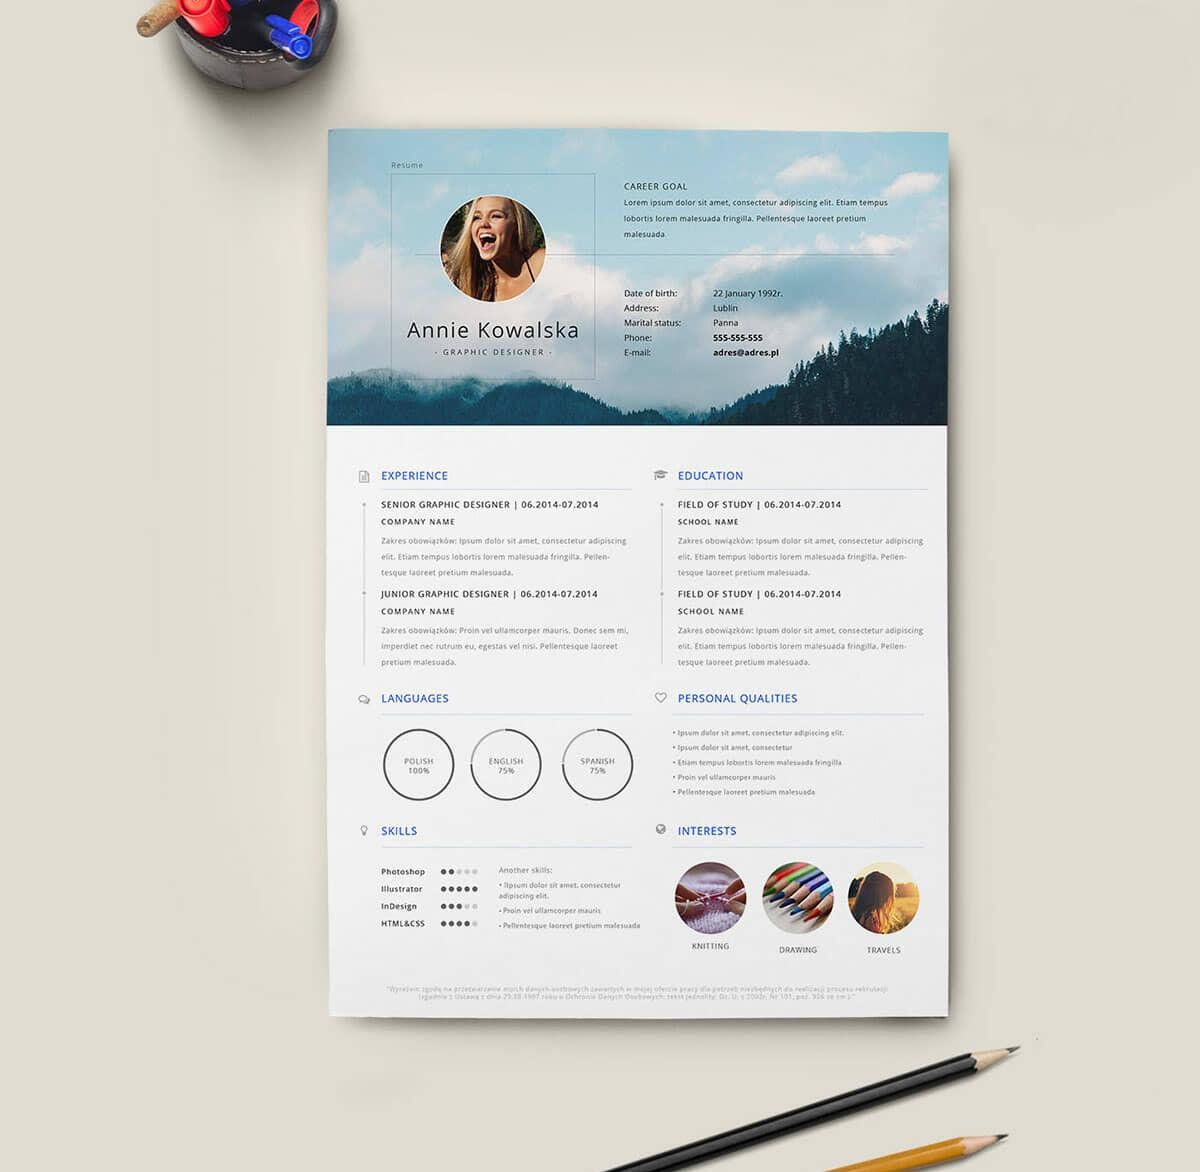 003 Stirring Curriculum Vitae Template Free Inspiration  Download South Africa Format Pdf SampleFull